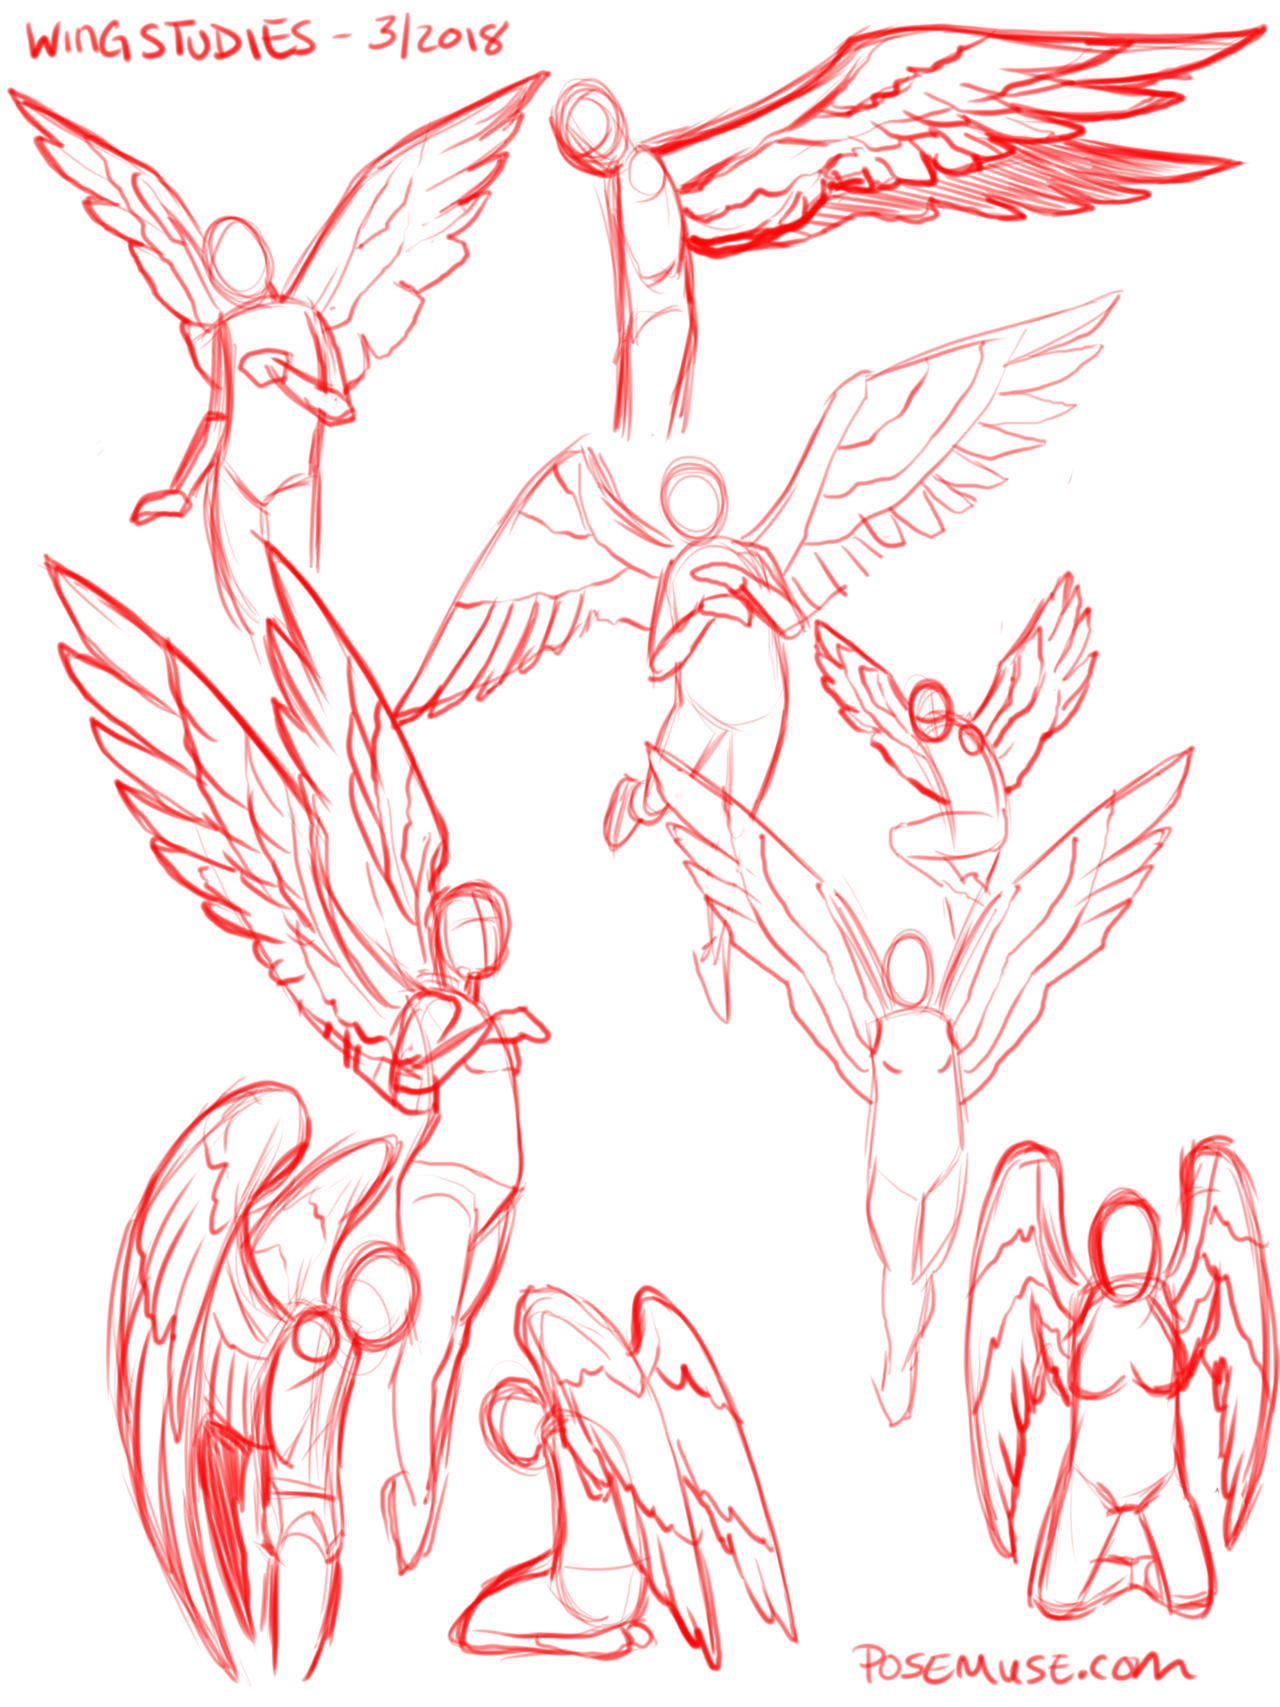 Pose Reference Posereference One Of My Asks Was About Winged